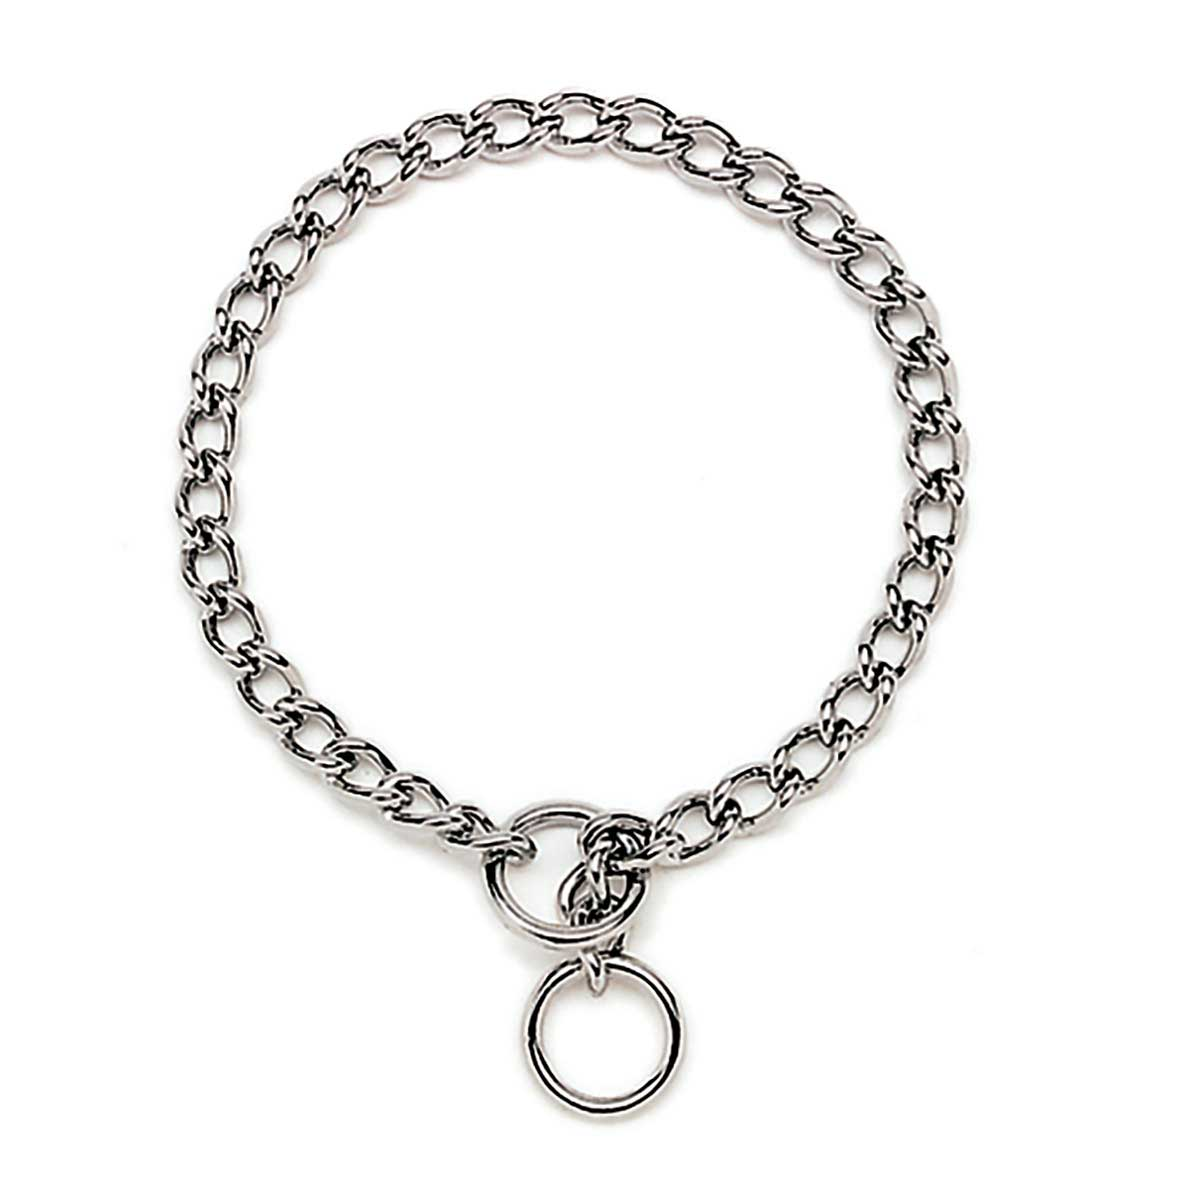 1.5mm Extra Fine Choke Chains for Dogs